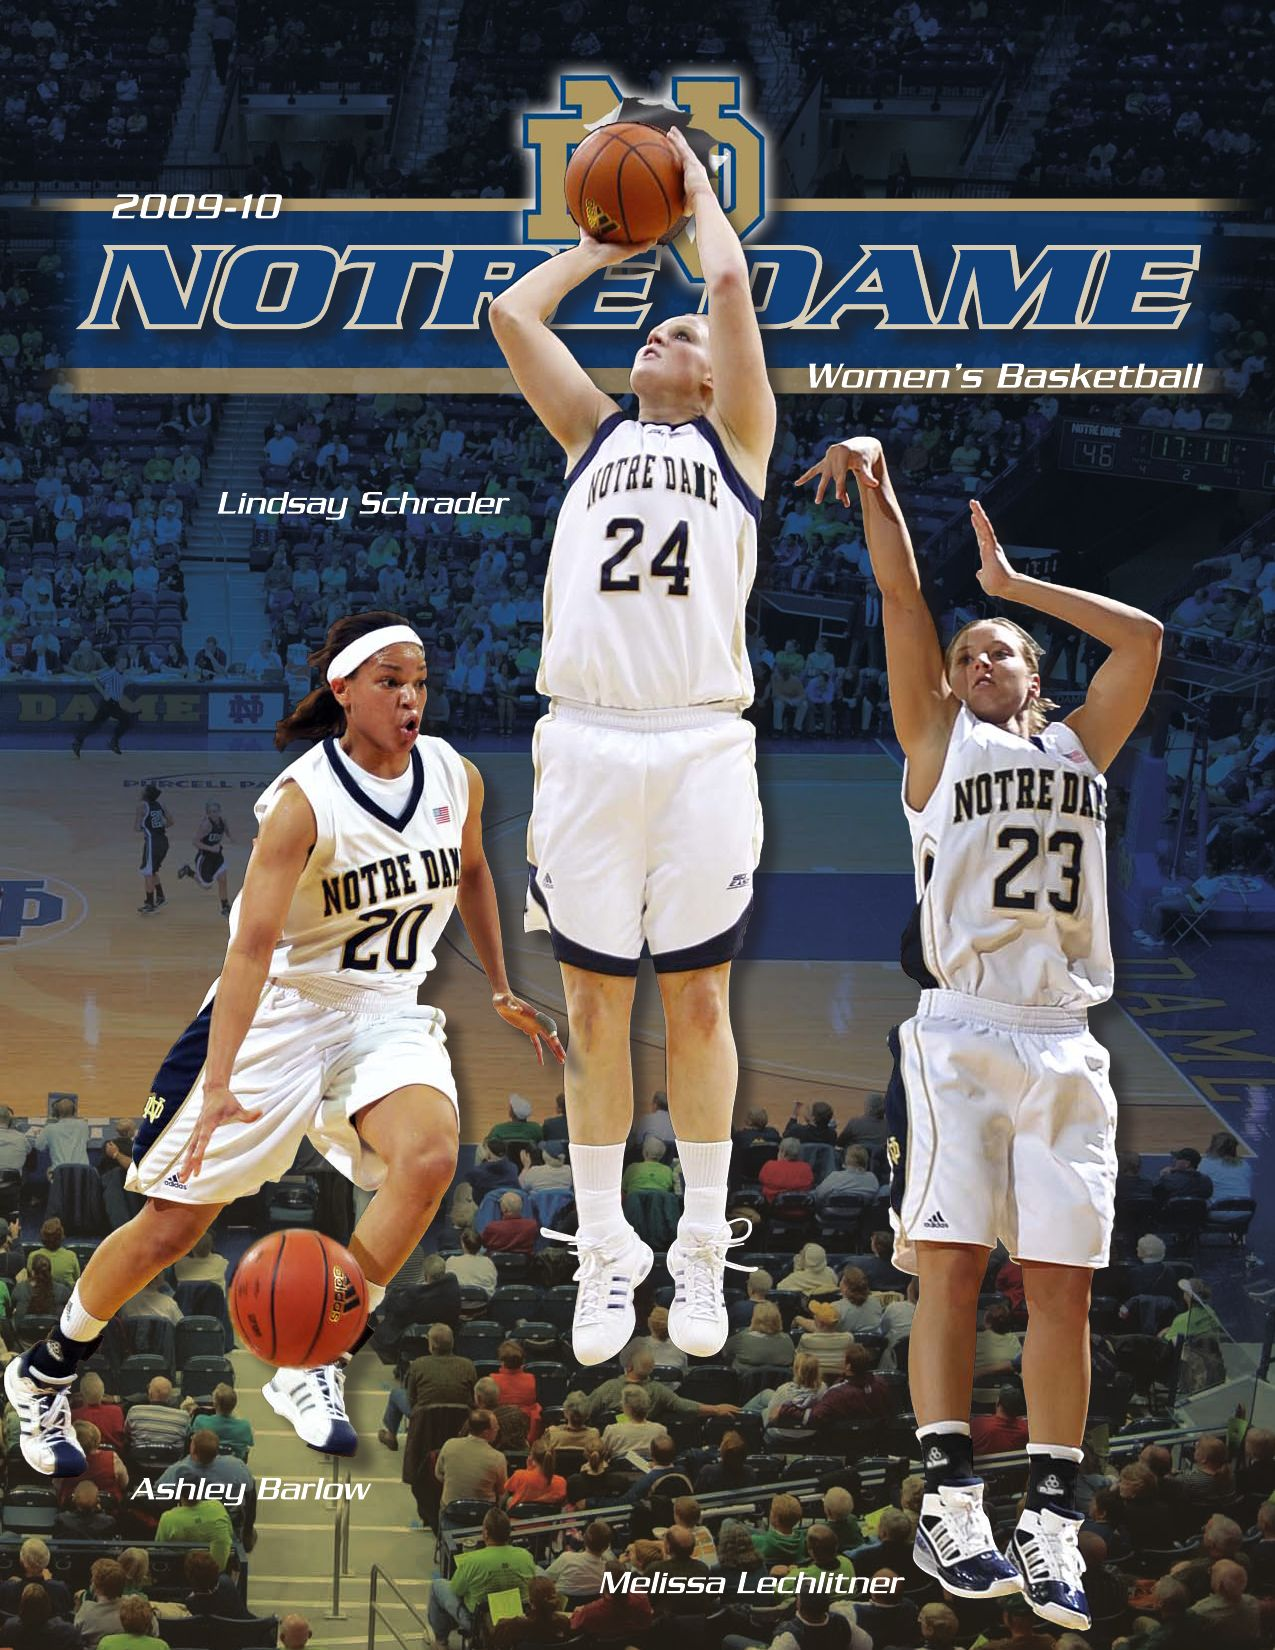 half off bce49 52791 2009-10 Notre Dame Women s Basketball Information Guide by Chris Masters -  issuu